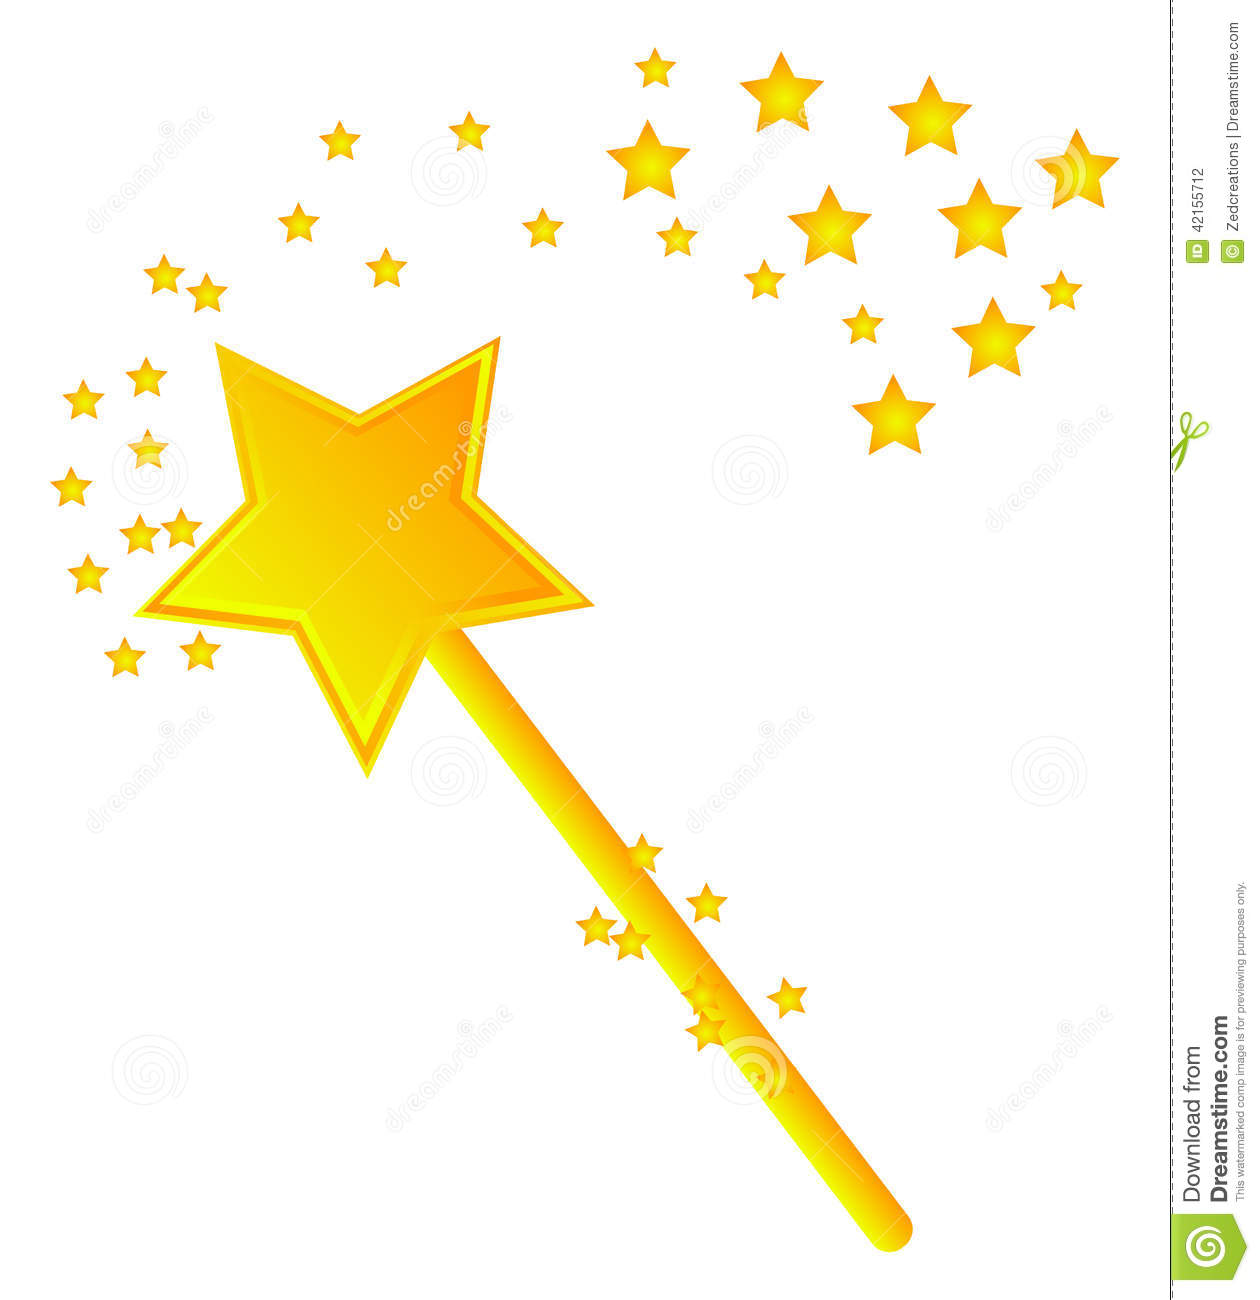 magic wand stock illustrations 8 544 magic wand stock rh dreamstime com free clipart magic wand Magic Wand Clip Art Frog